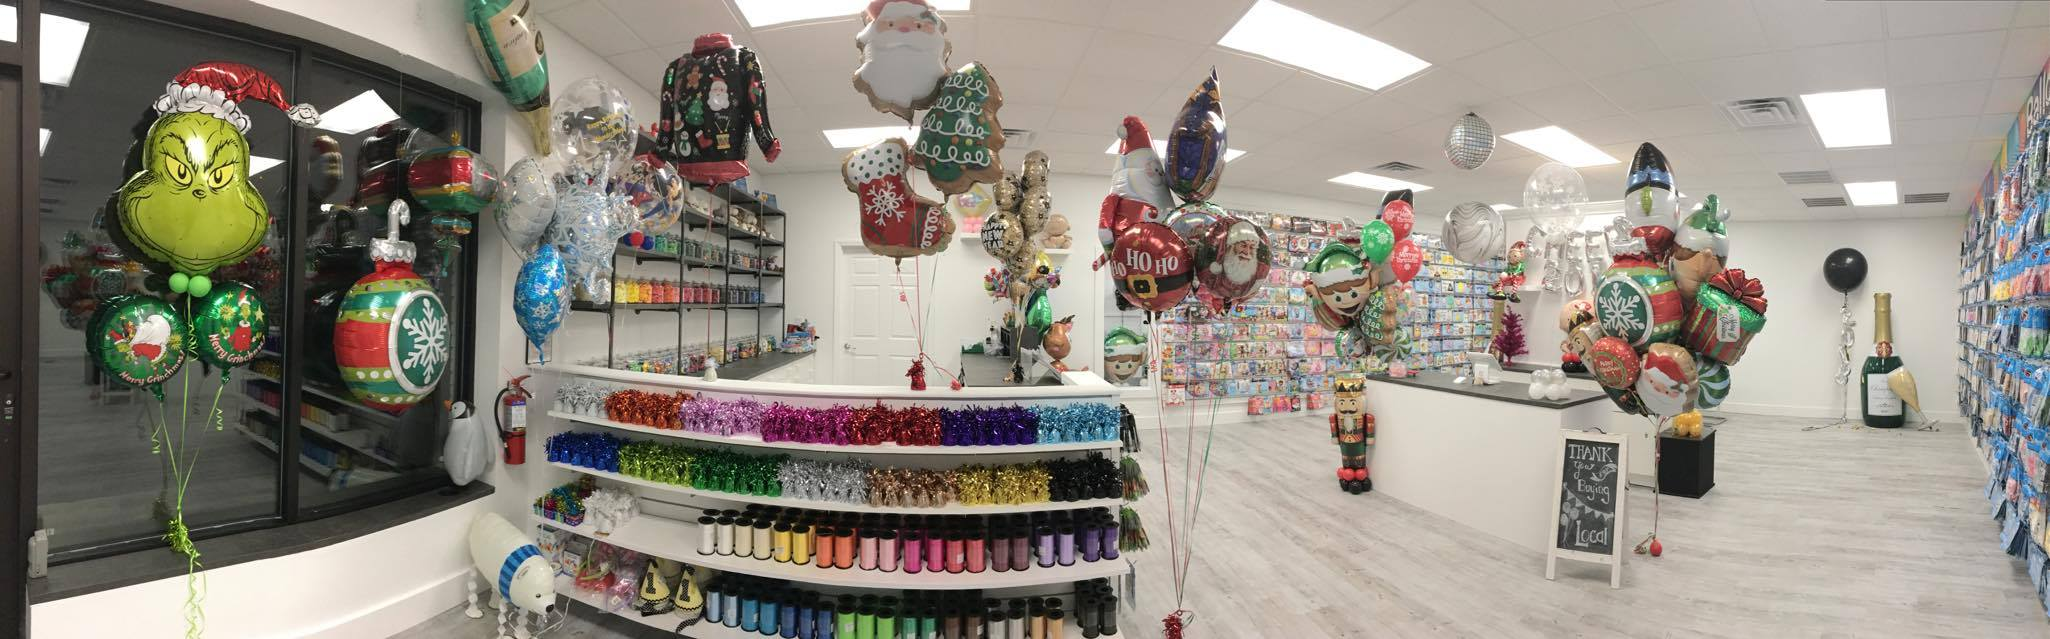 Peek into our Retail Balloon Shop - Can you find the Elf looking thru the workshop window?